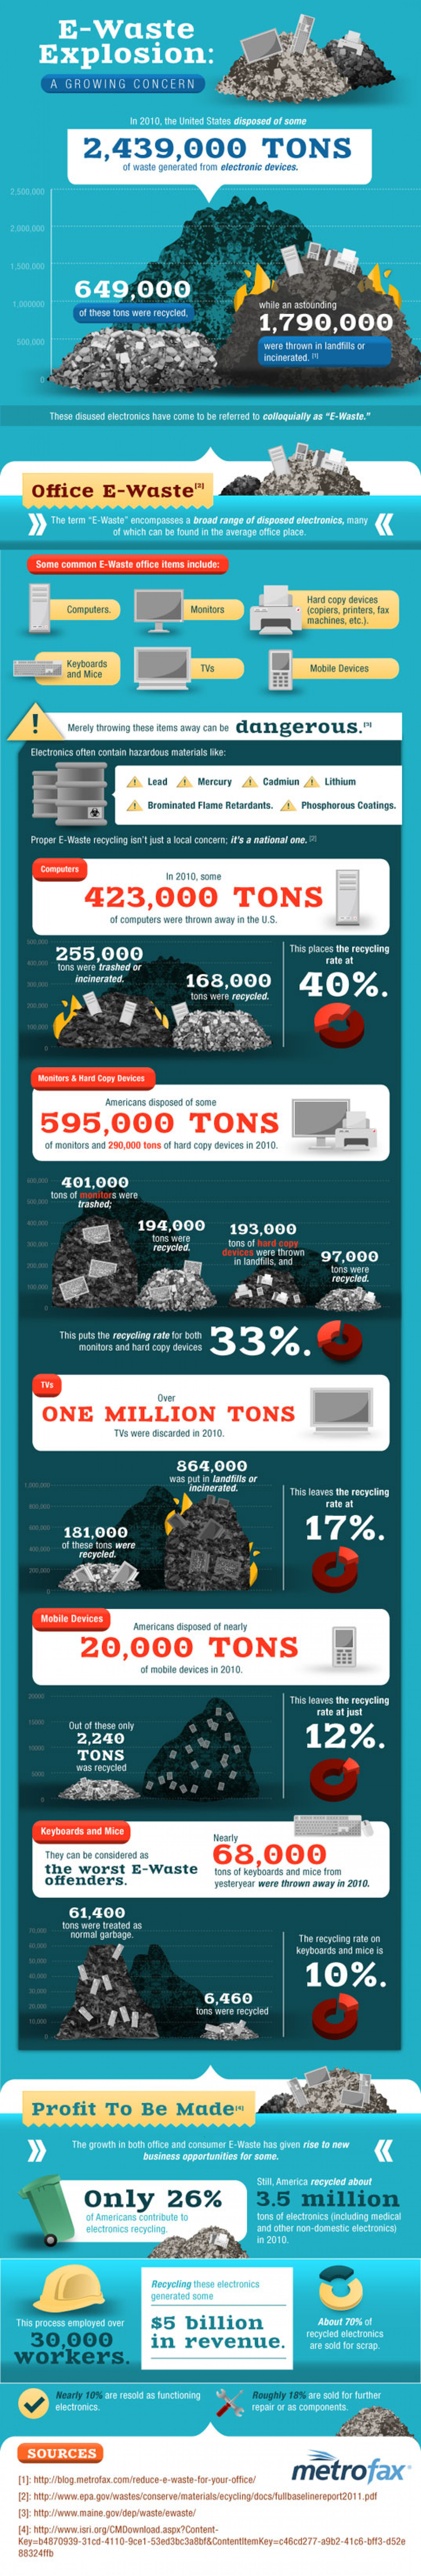 E-Waste Explostion: A Growing Concern Infographic